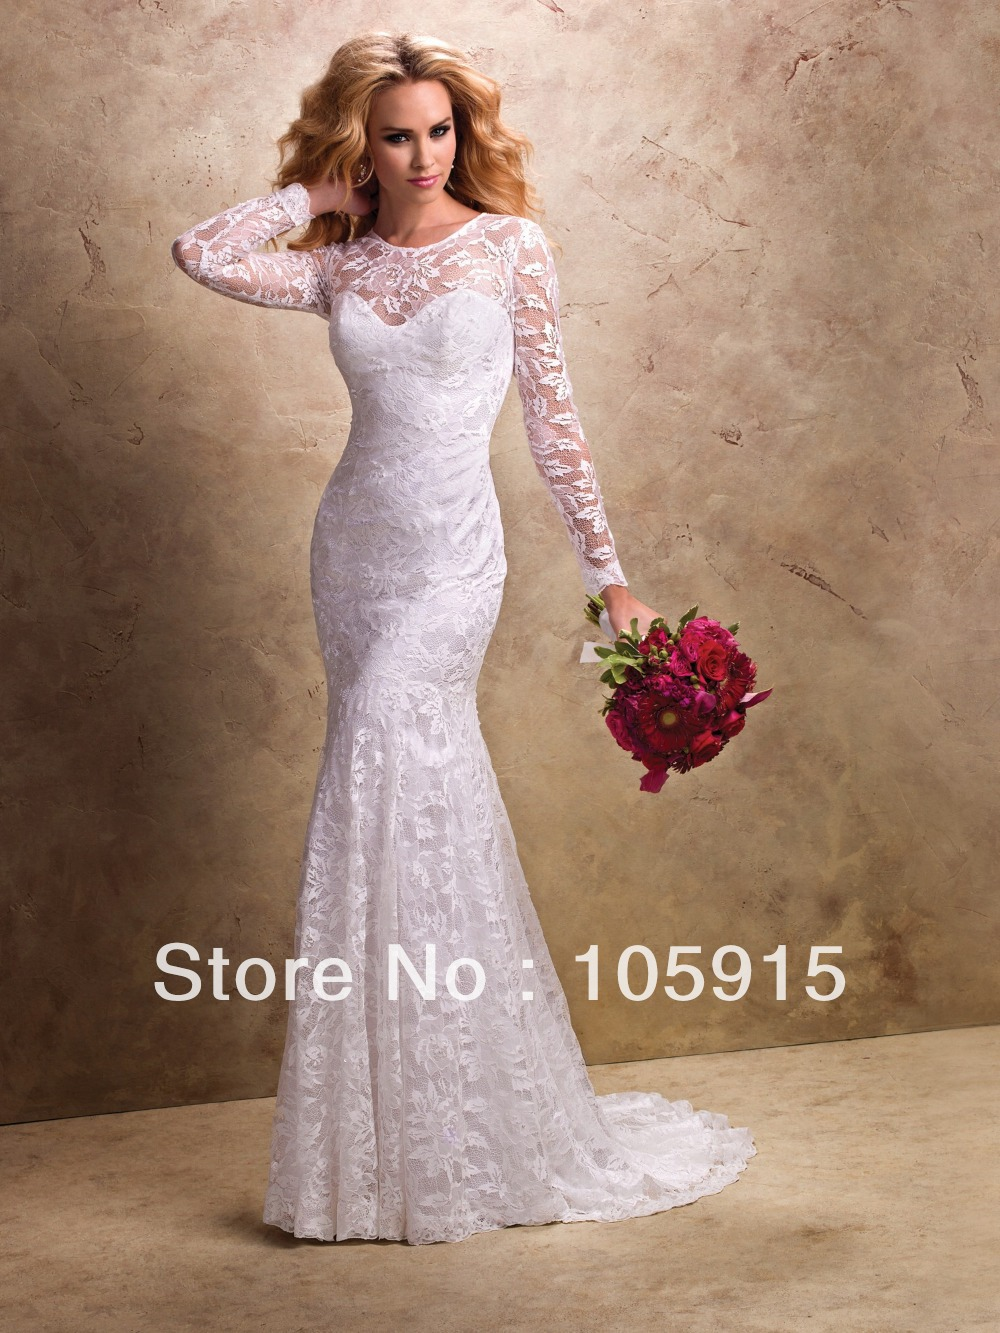 casual beach style wedding dresses simple beach wedding dresses Beach Wedding Dresses Uk Dress Ideas With Diana